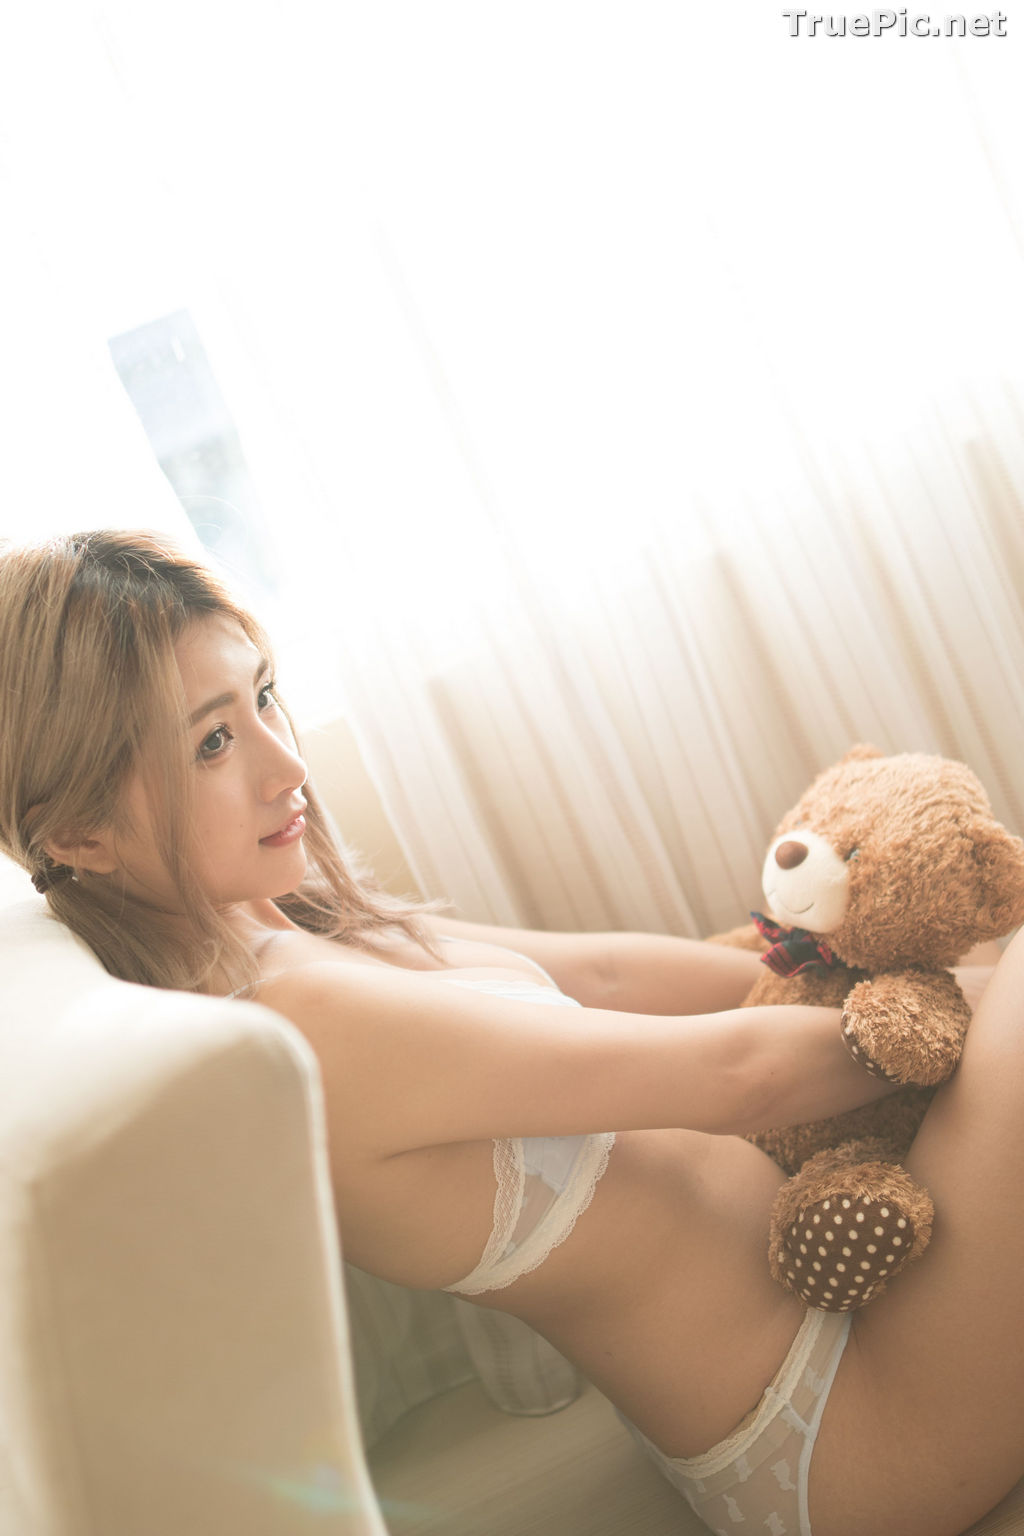 Image Taiwanese Hot Model - Sexy Kendo Girl - TruePic.net - Picture-46